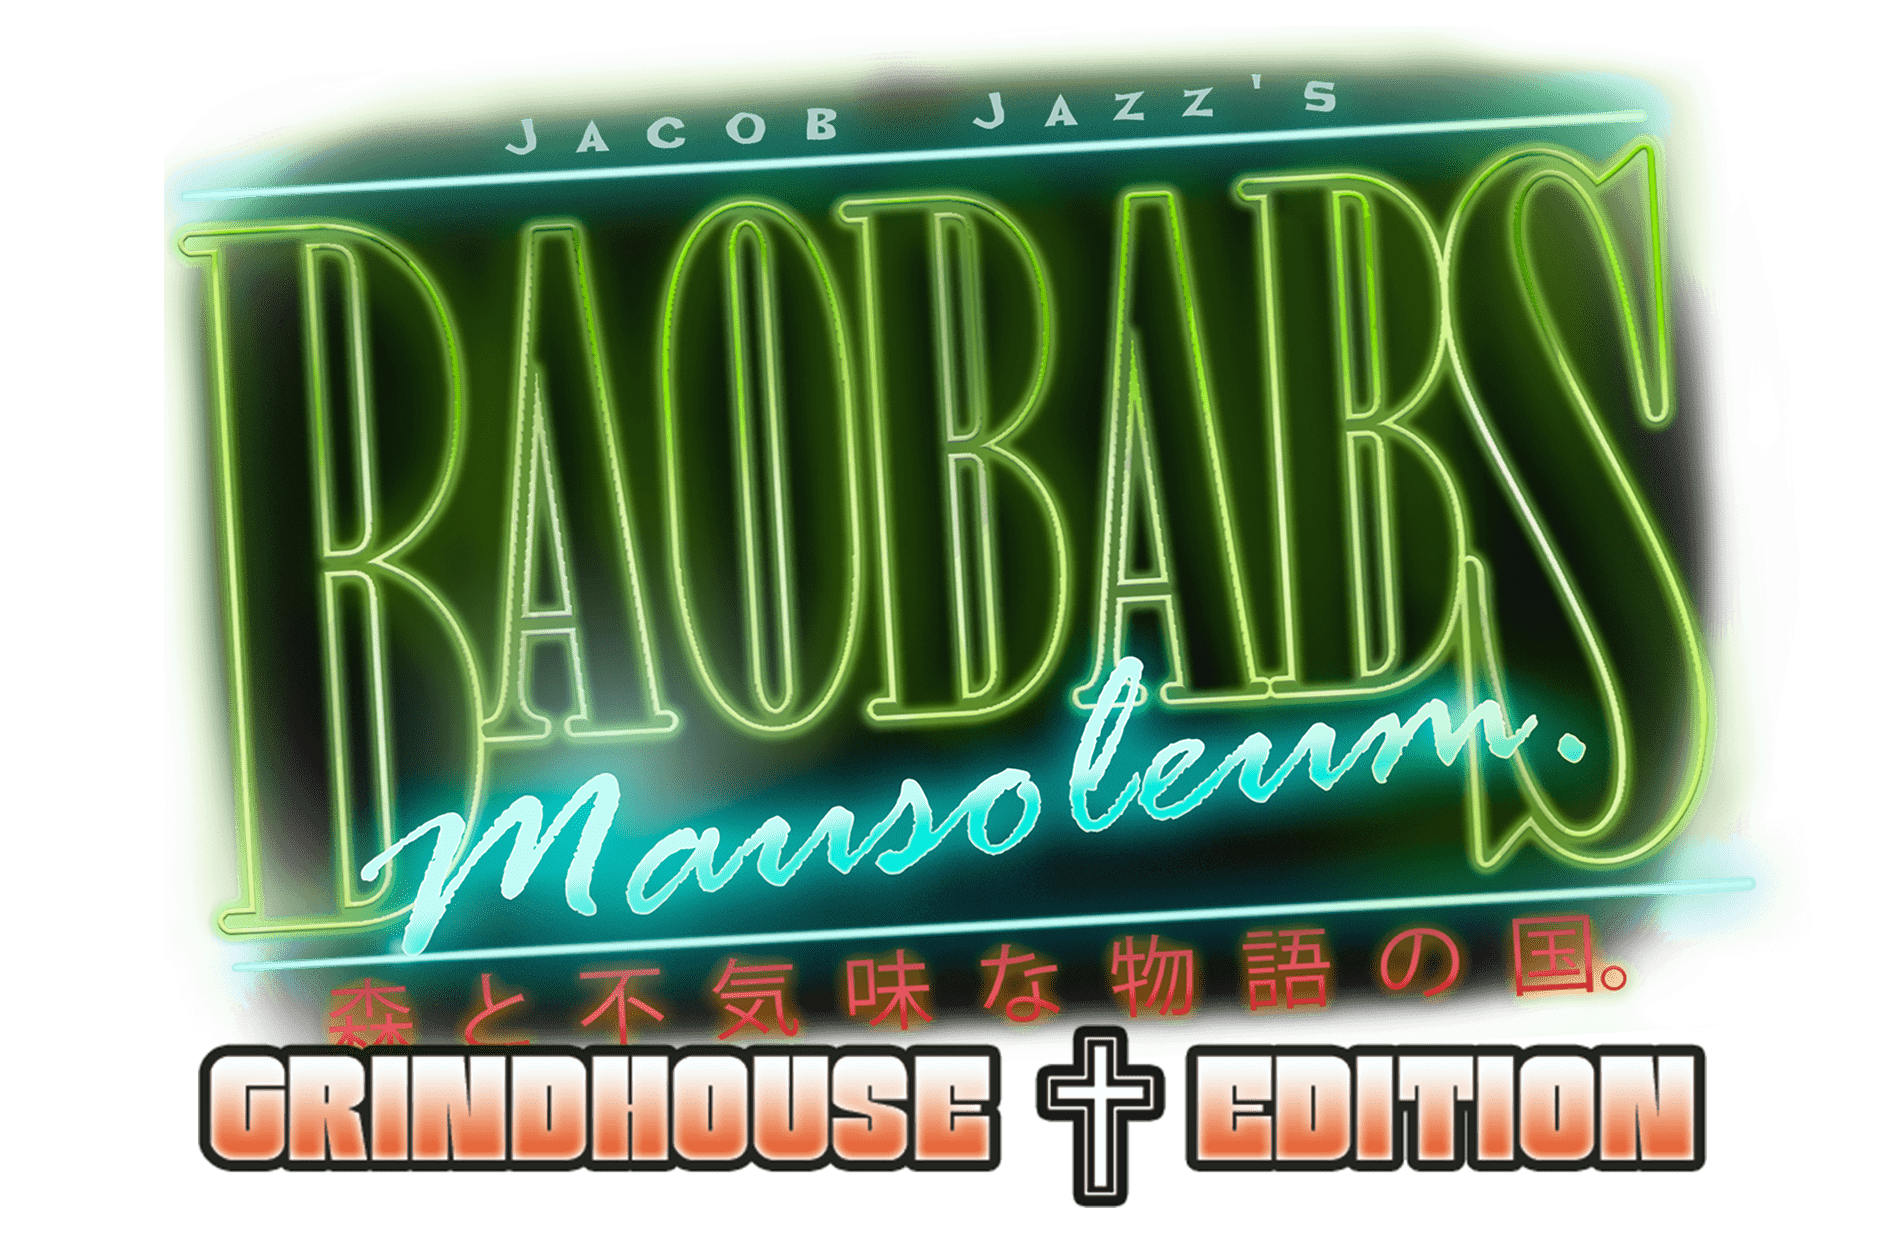 Baobabs Mausoleum Grindhouse ✝️ Edition